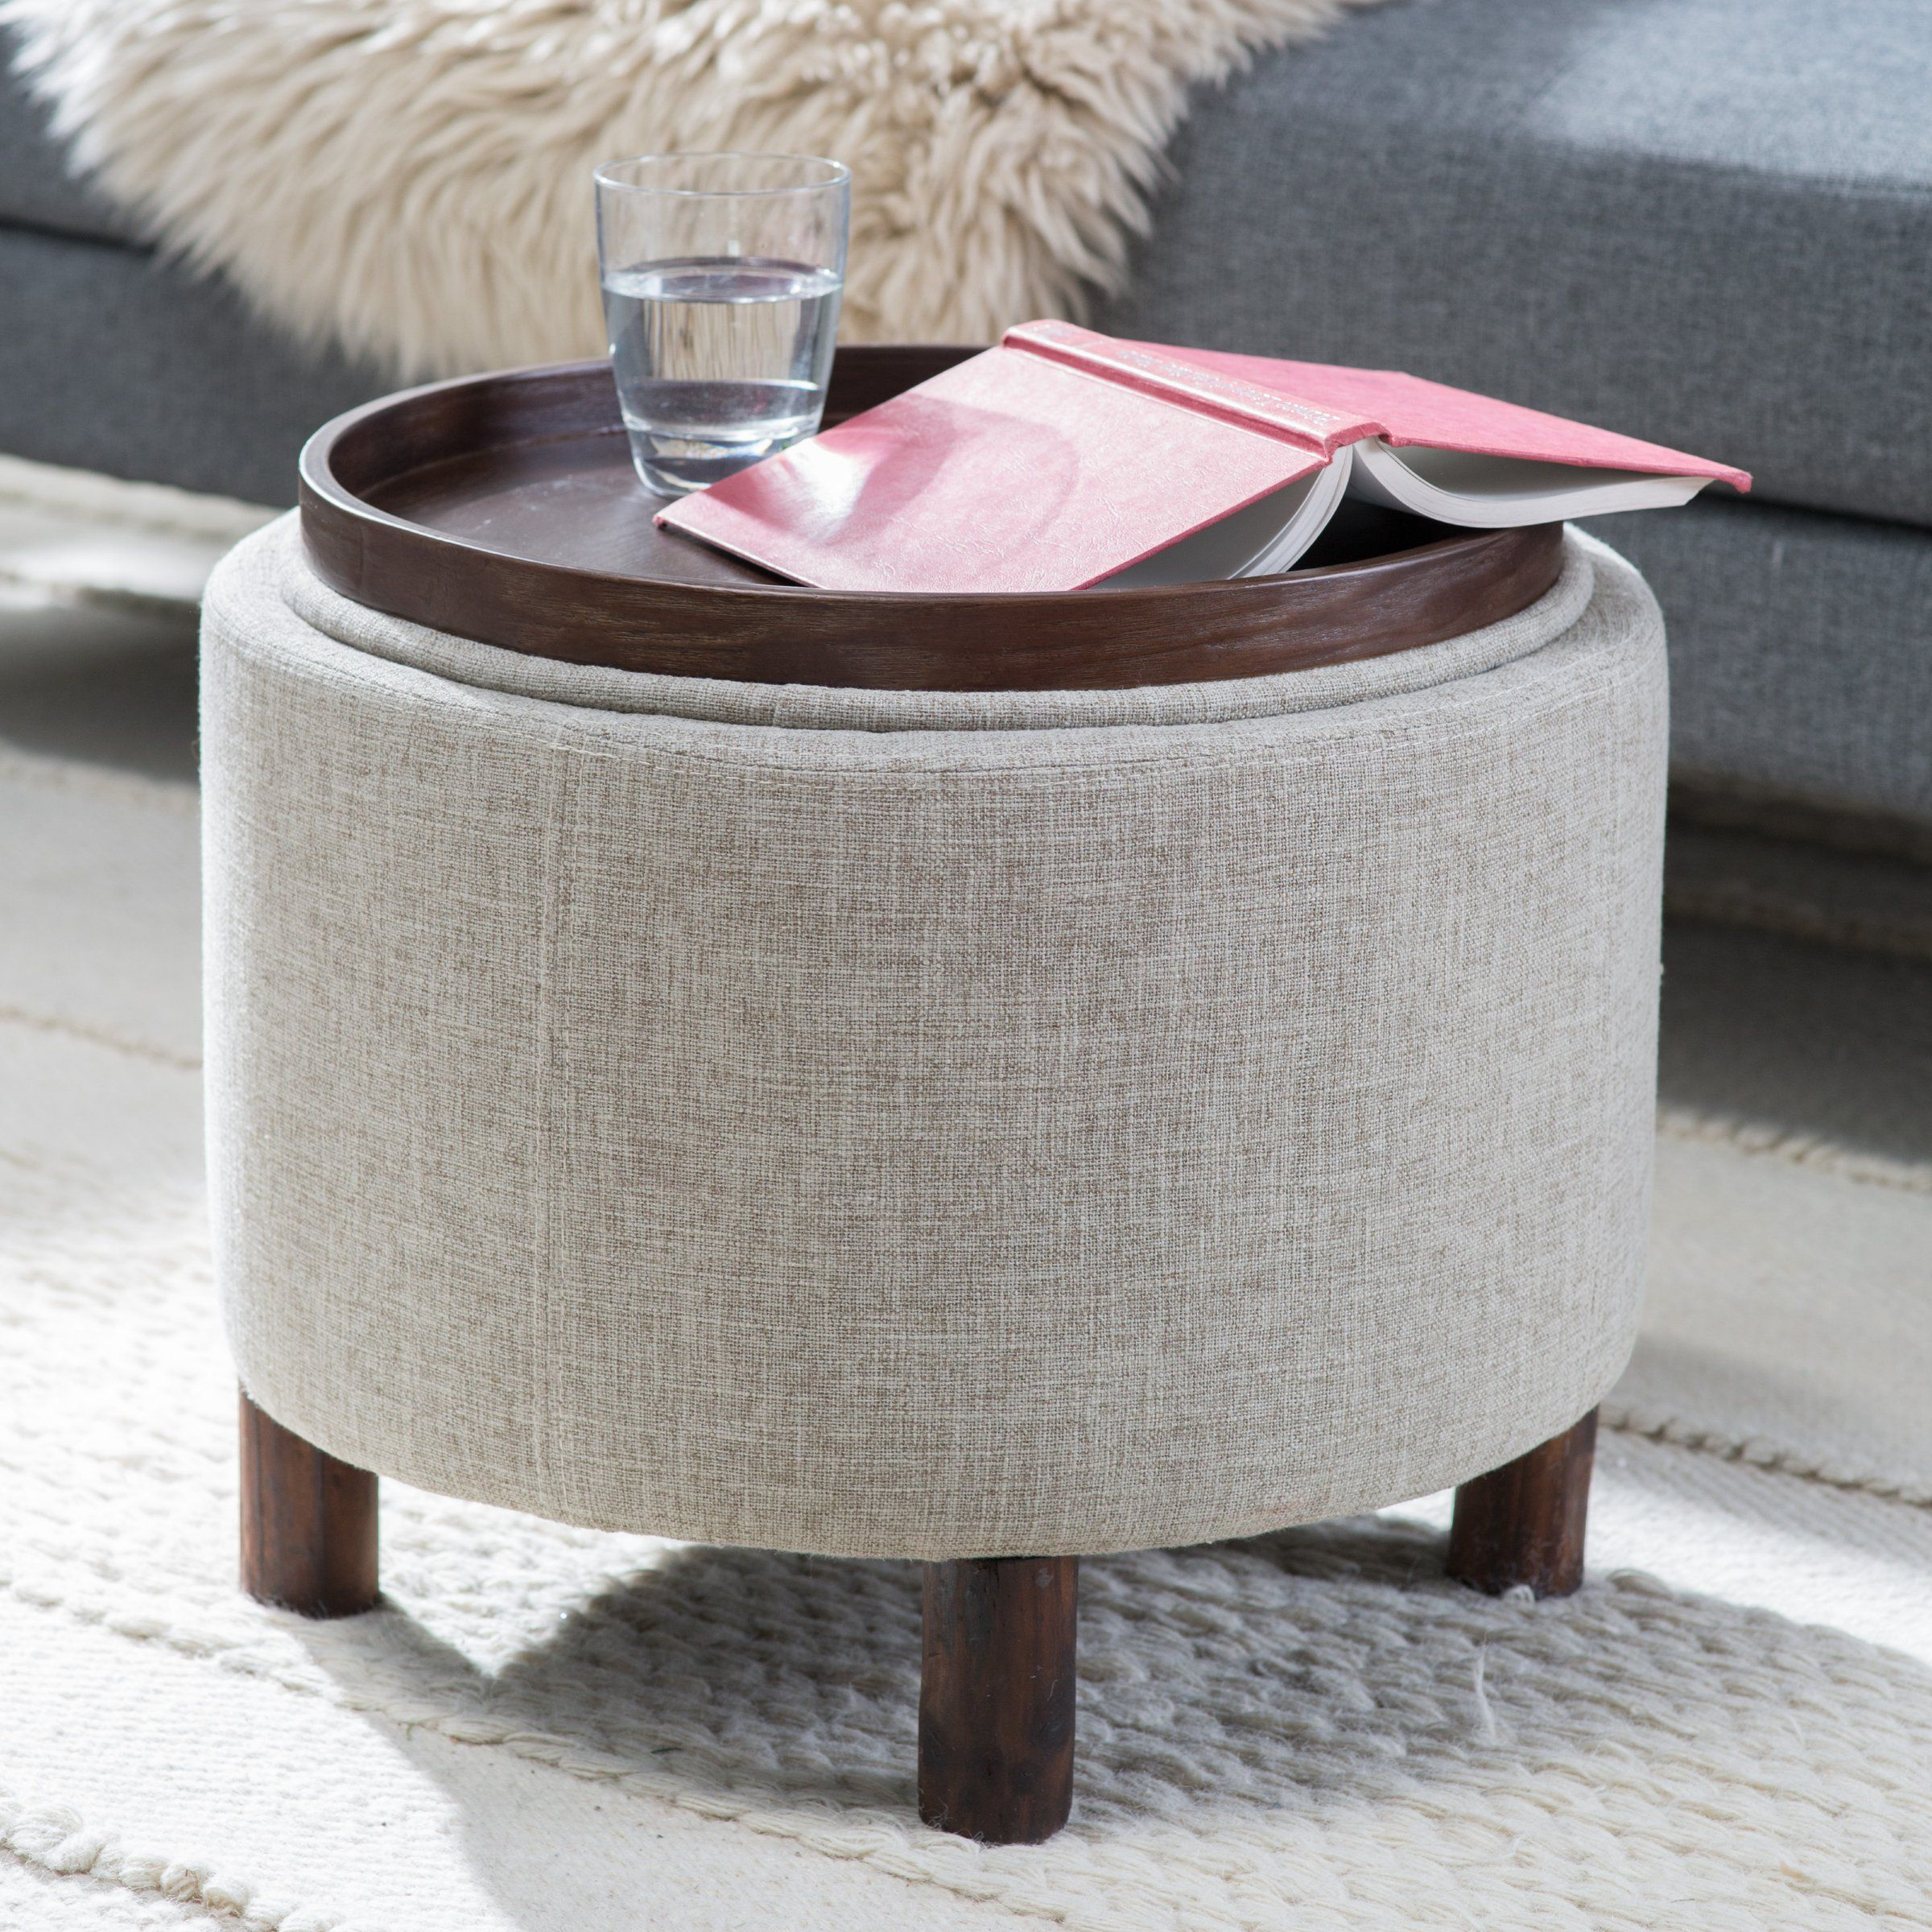 Fantastic Belham Living Ingram Round Storage Ottoman With Cocktail Gmtry Best Dining Table And Chair Ideas Images Gmtryco